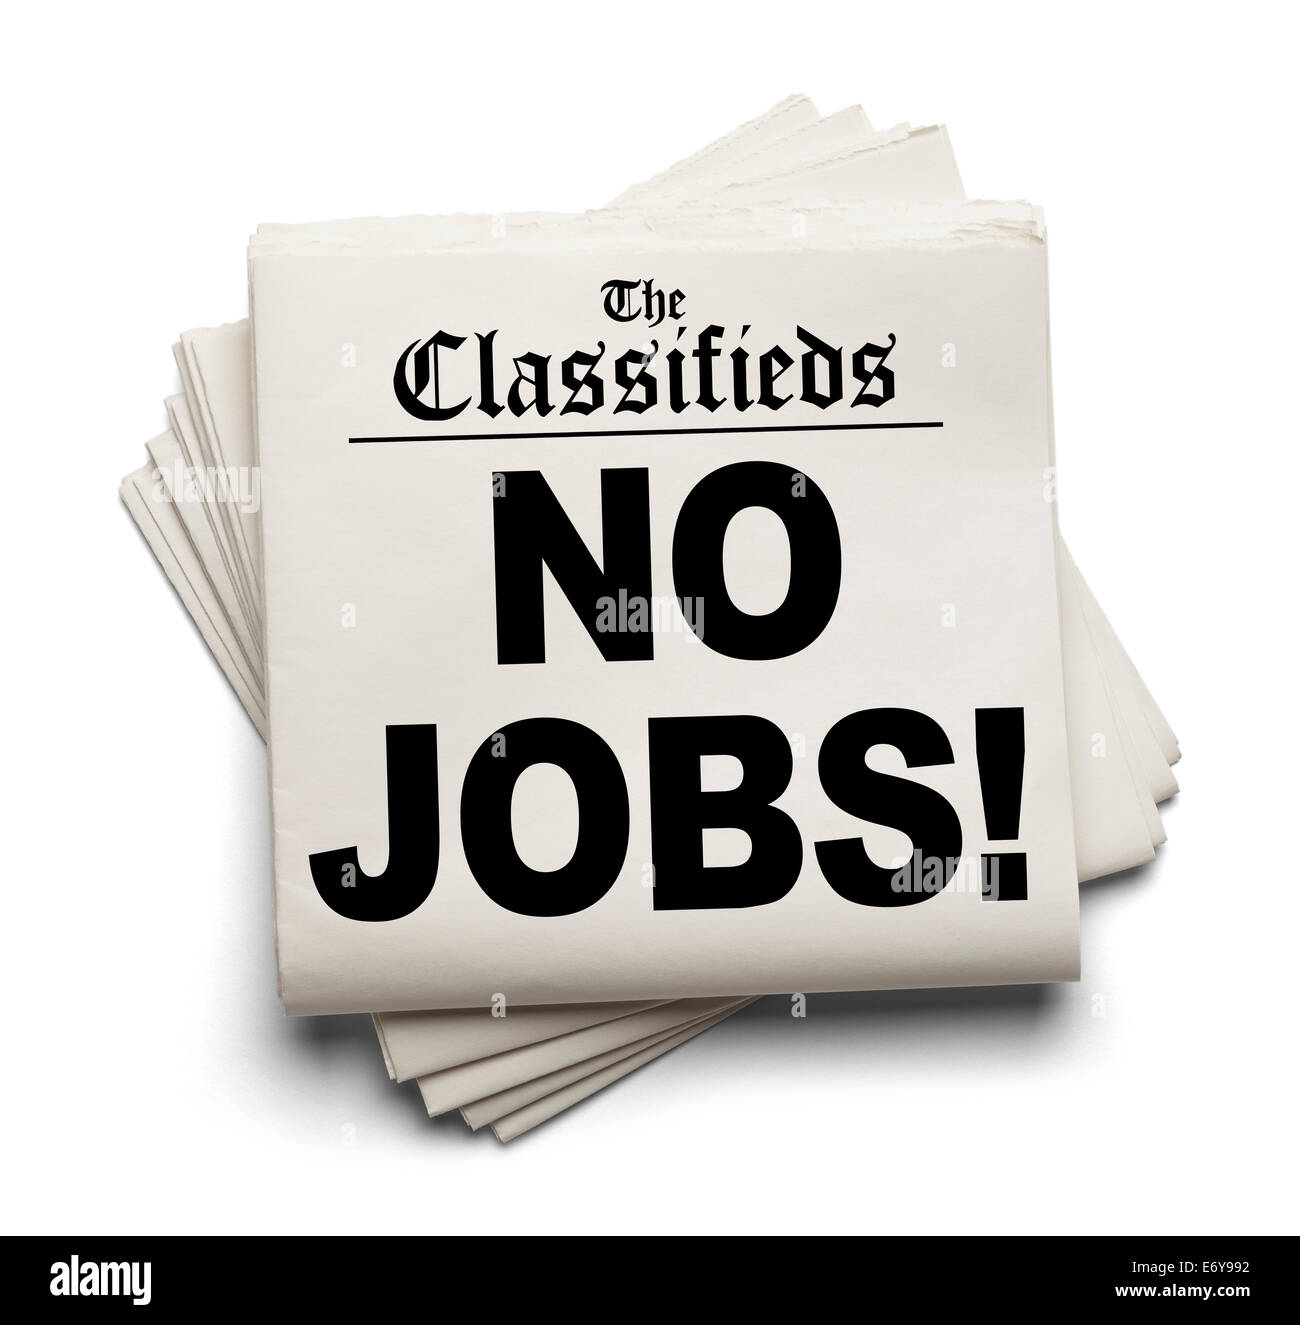 Newspaper Classifieds No Jobs Headline Isolated on White Background. - Stock Image